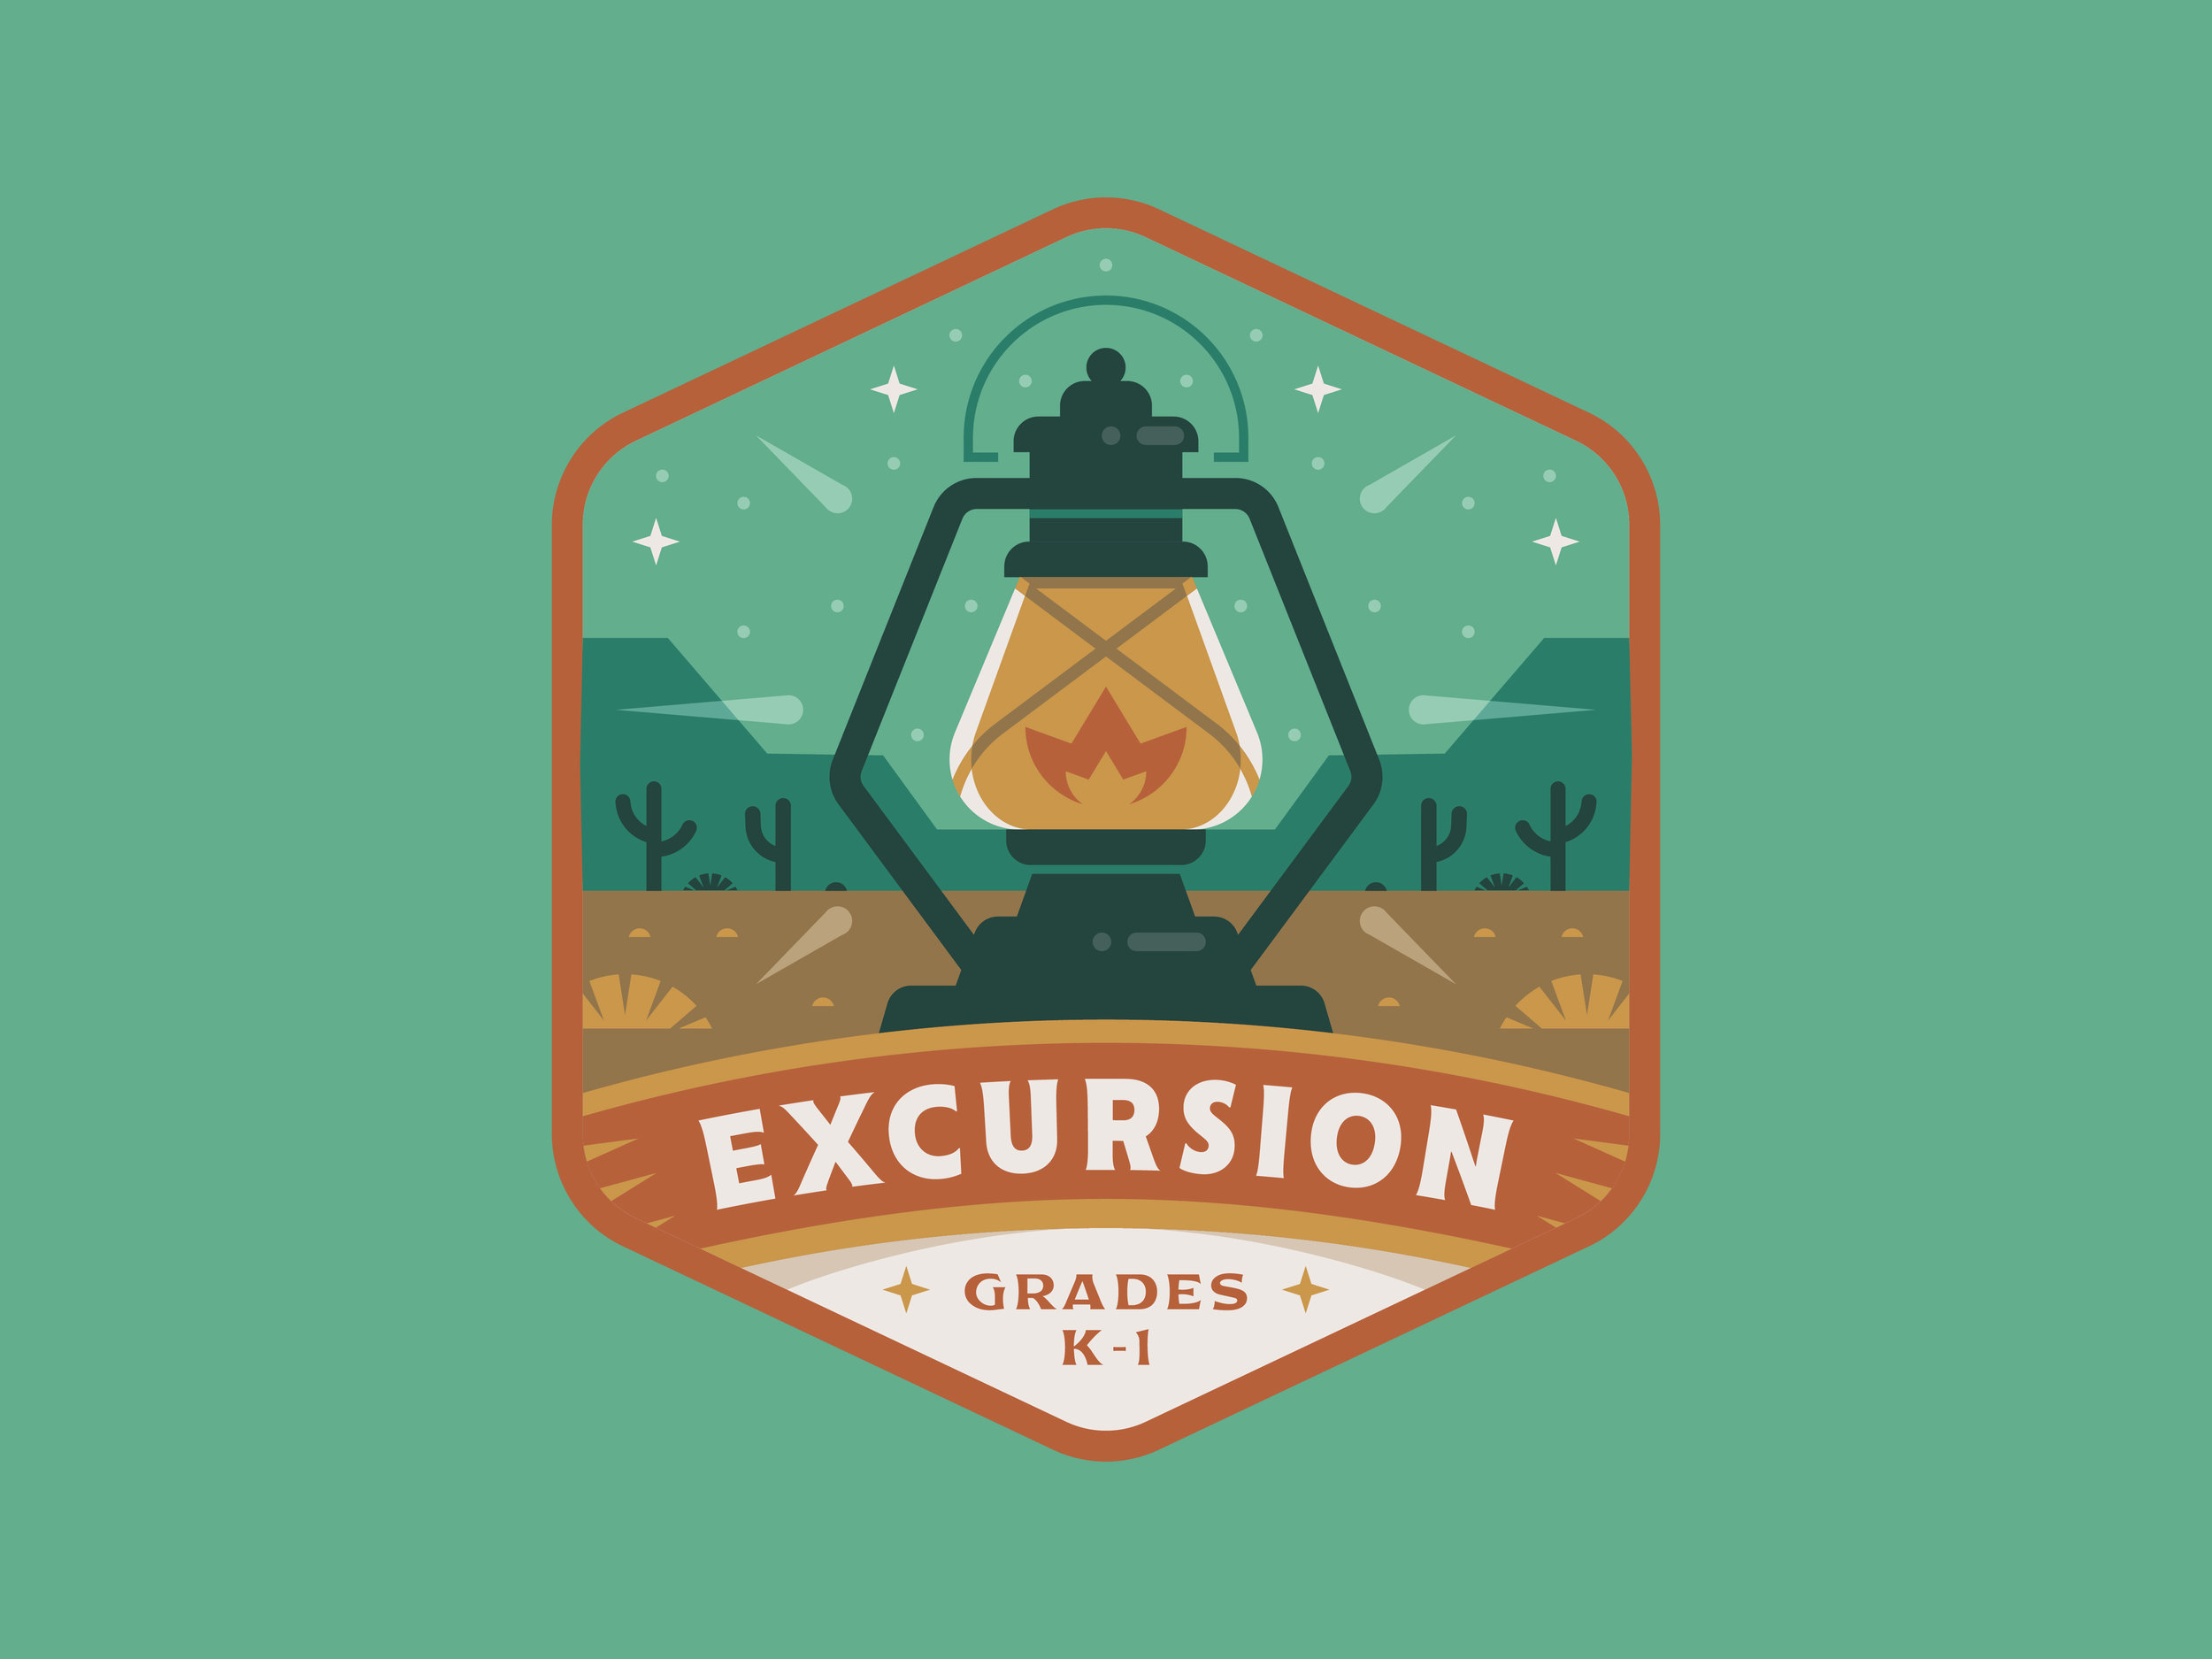 excursion-logo.jpg